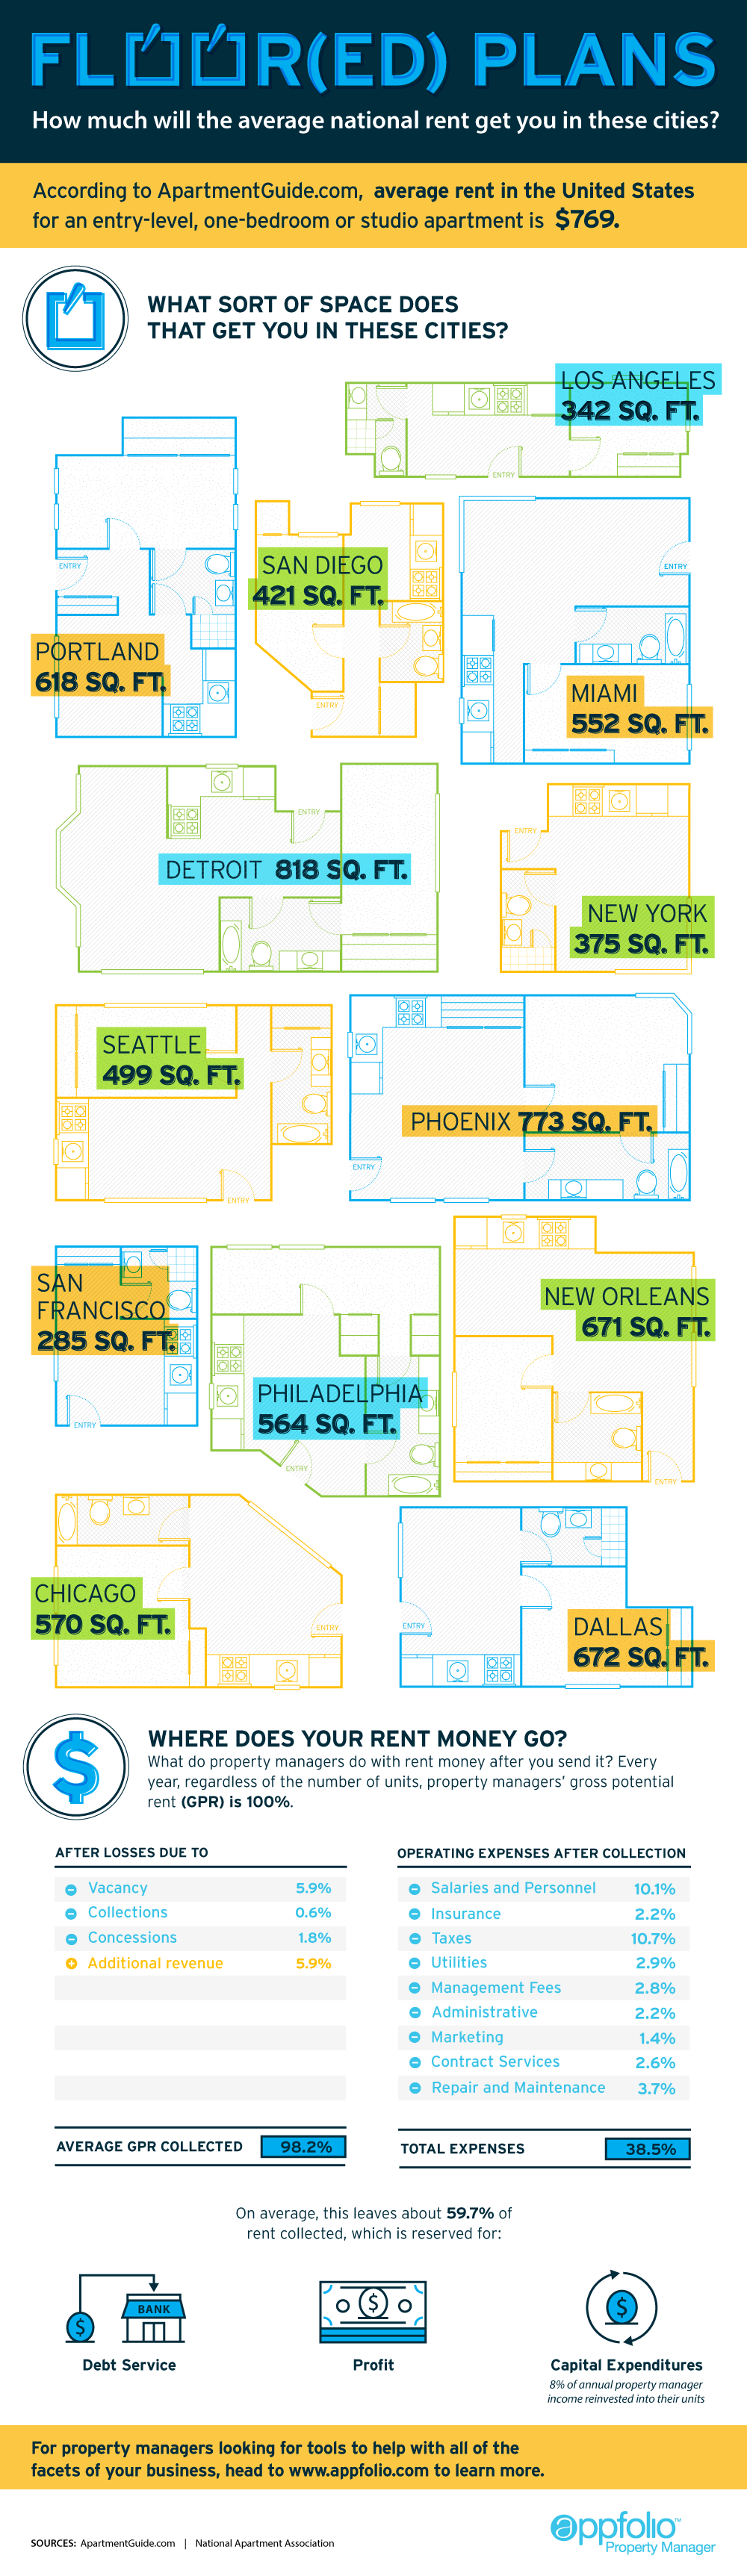 How Much Will The Average National Rent Get You Infographic Apartment Management Magazine